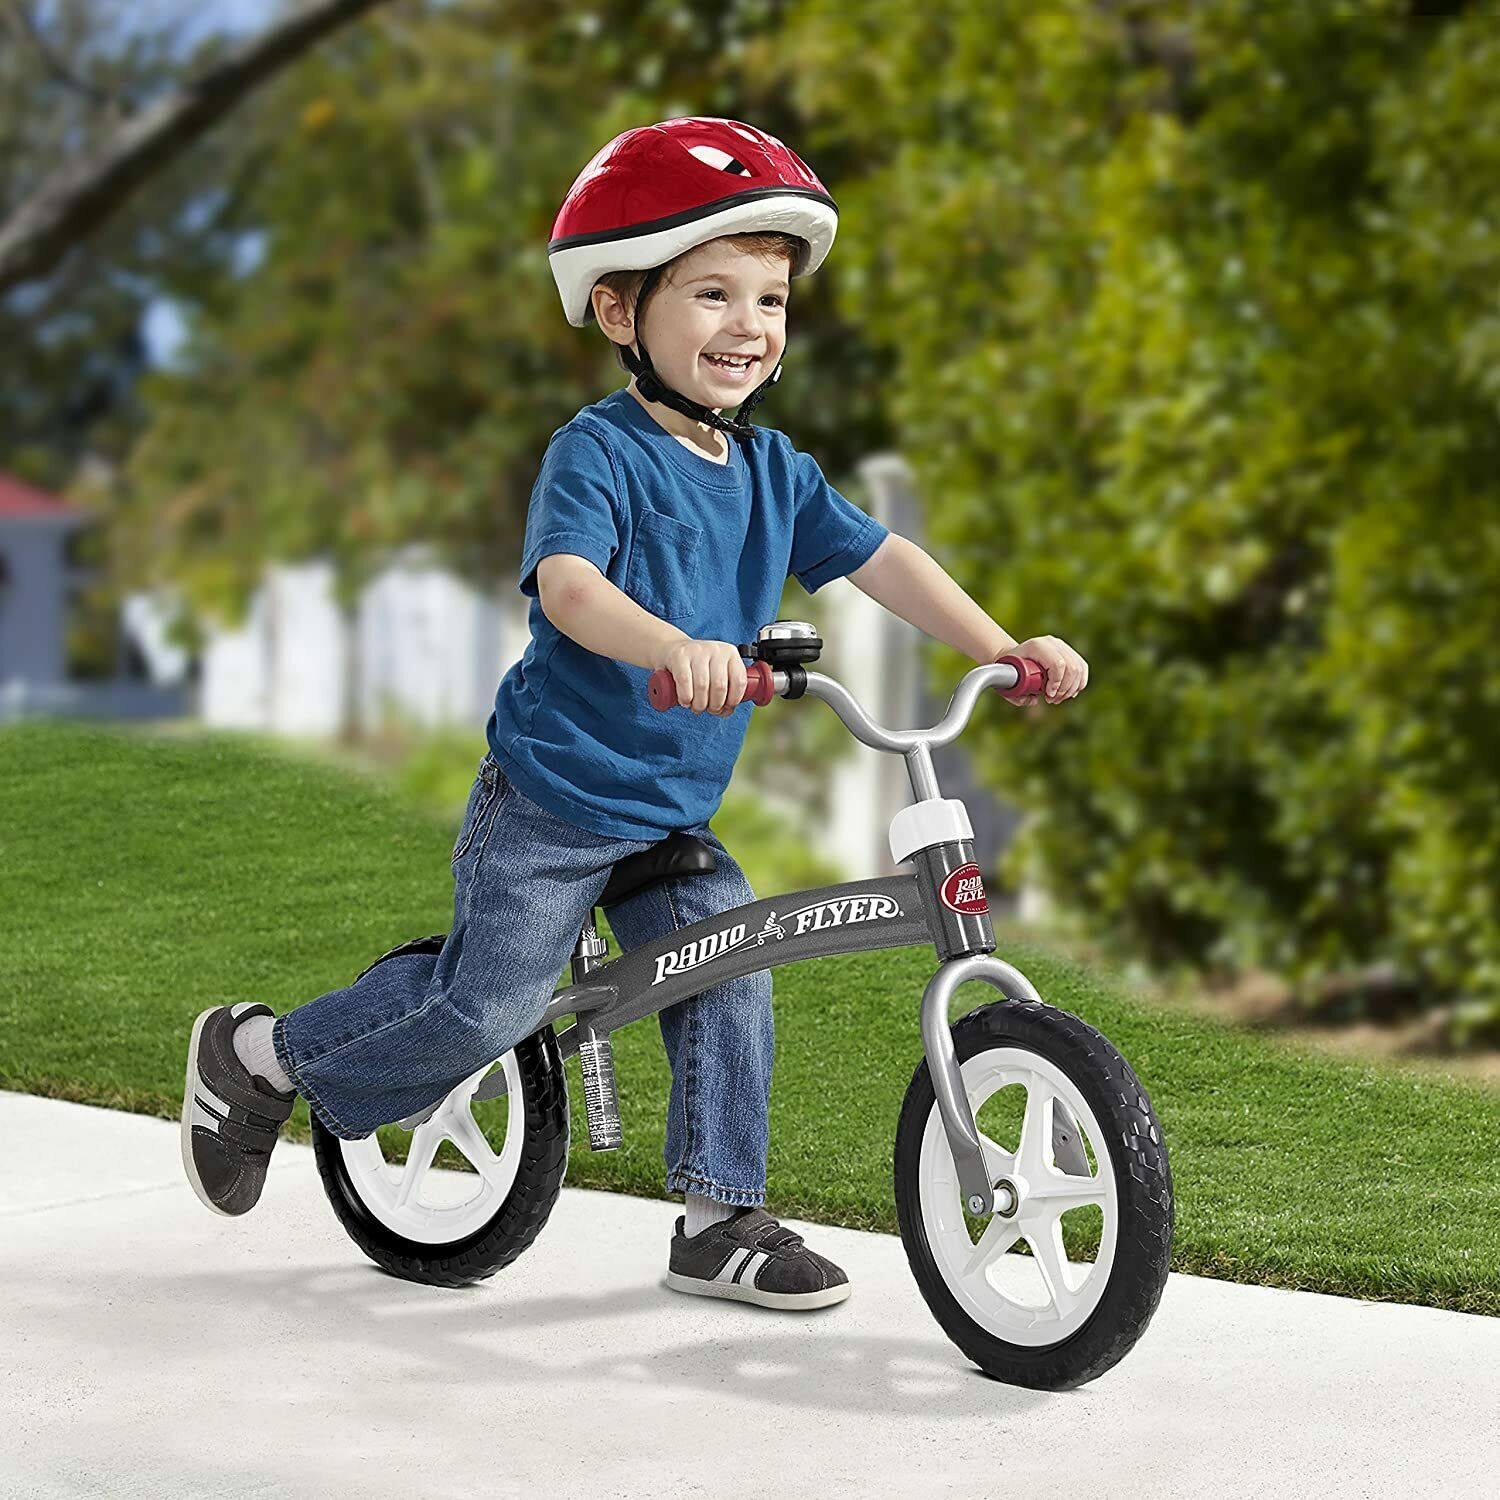 Toddler Balance Bicycle Air Bike Learn To Balance No Pedals